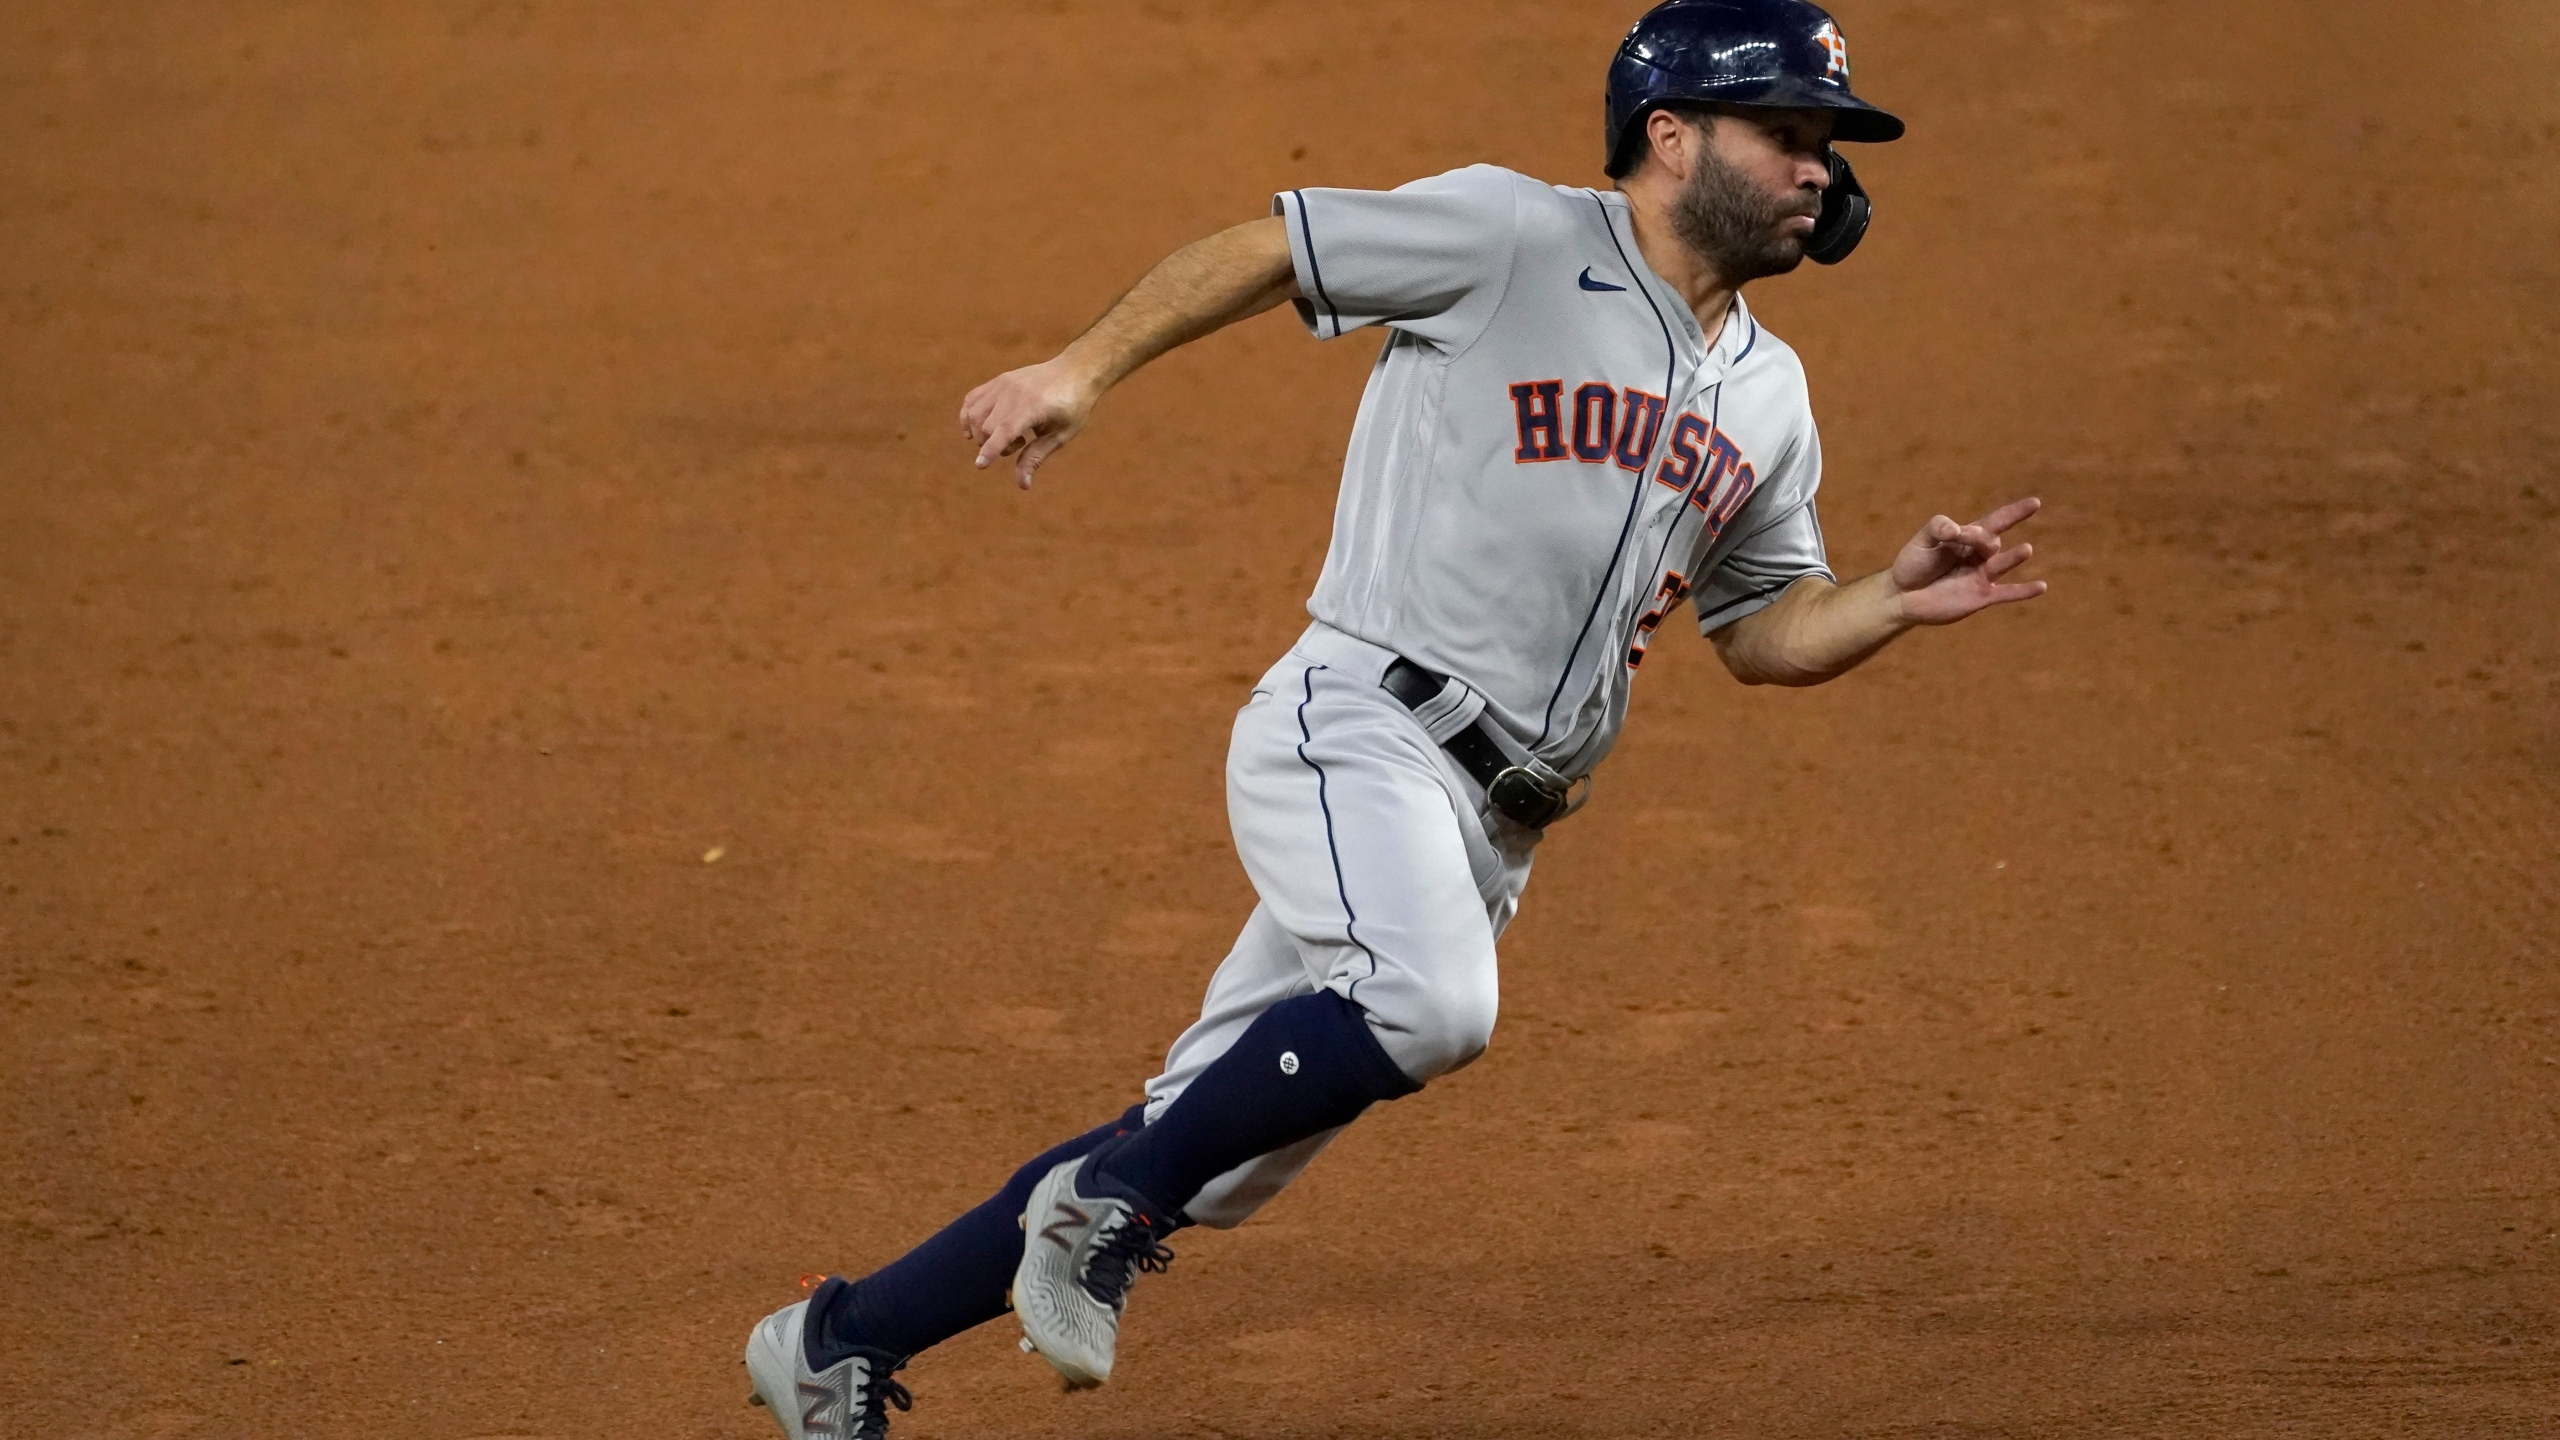 Jose Altuve